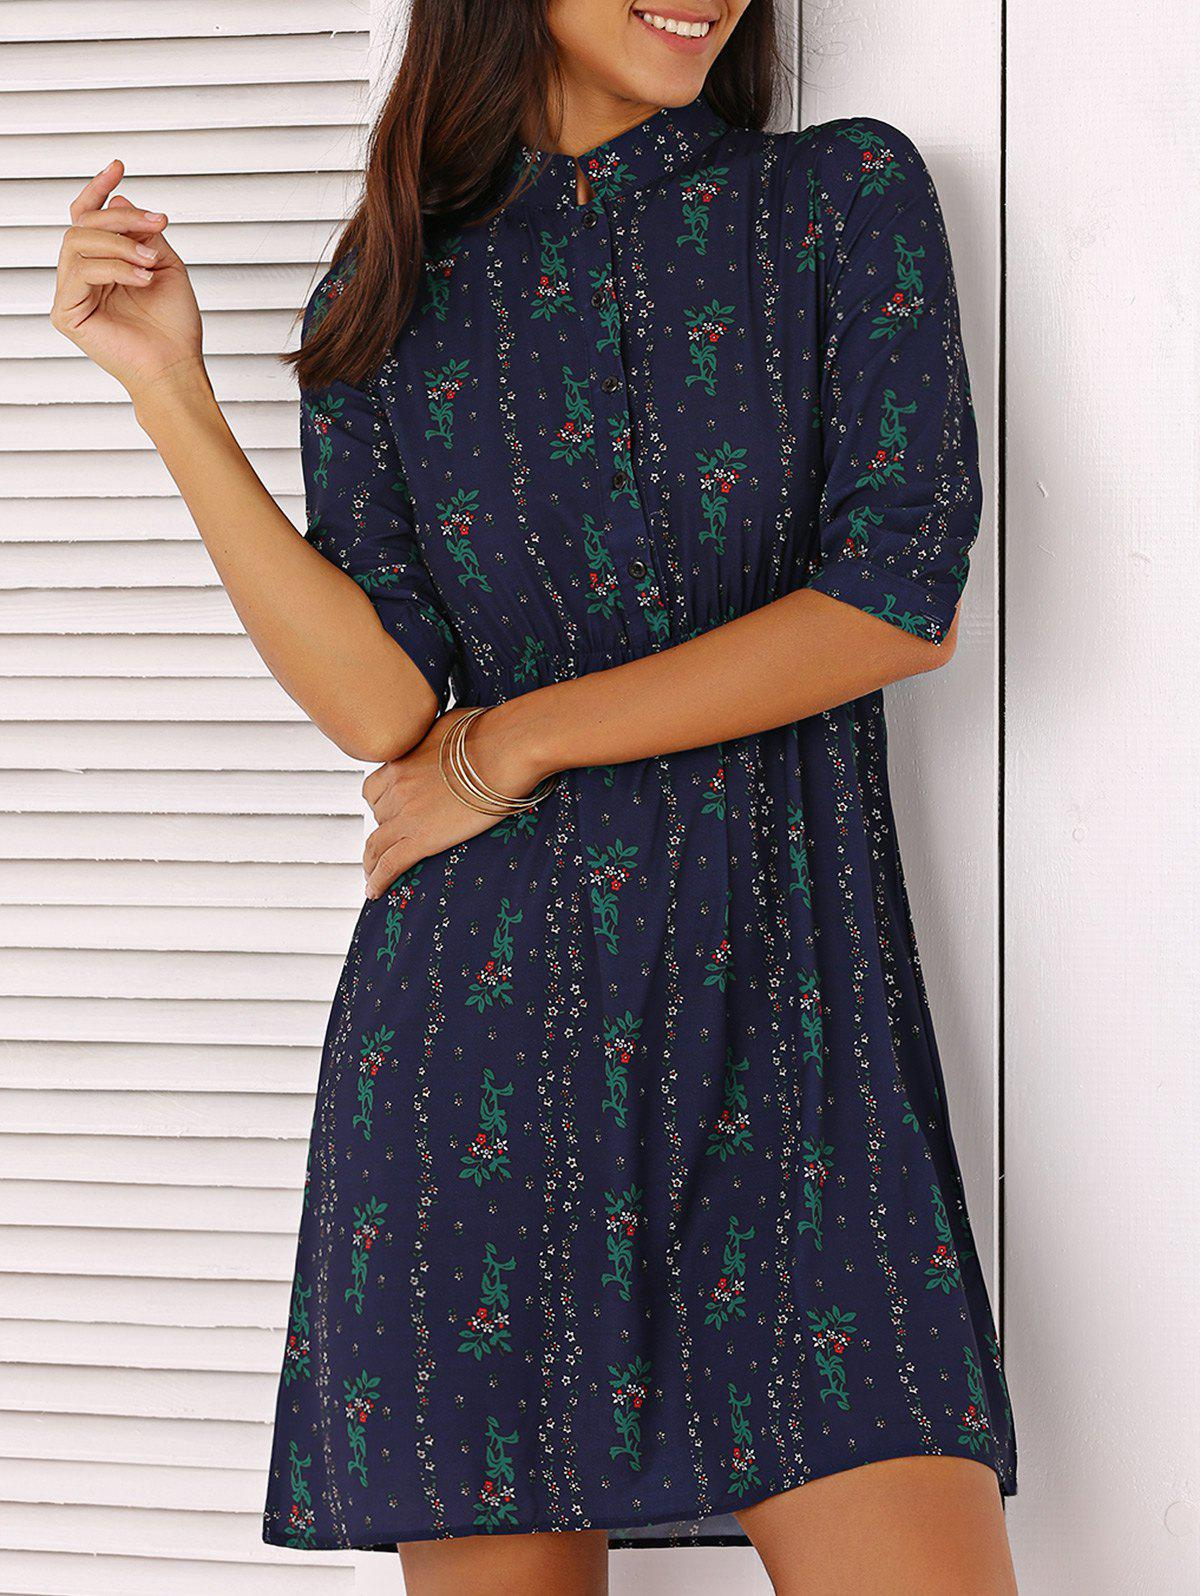 Tiny Flower Print Mini Dress - DEEP BLUE S